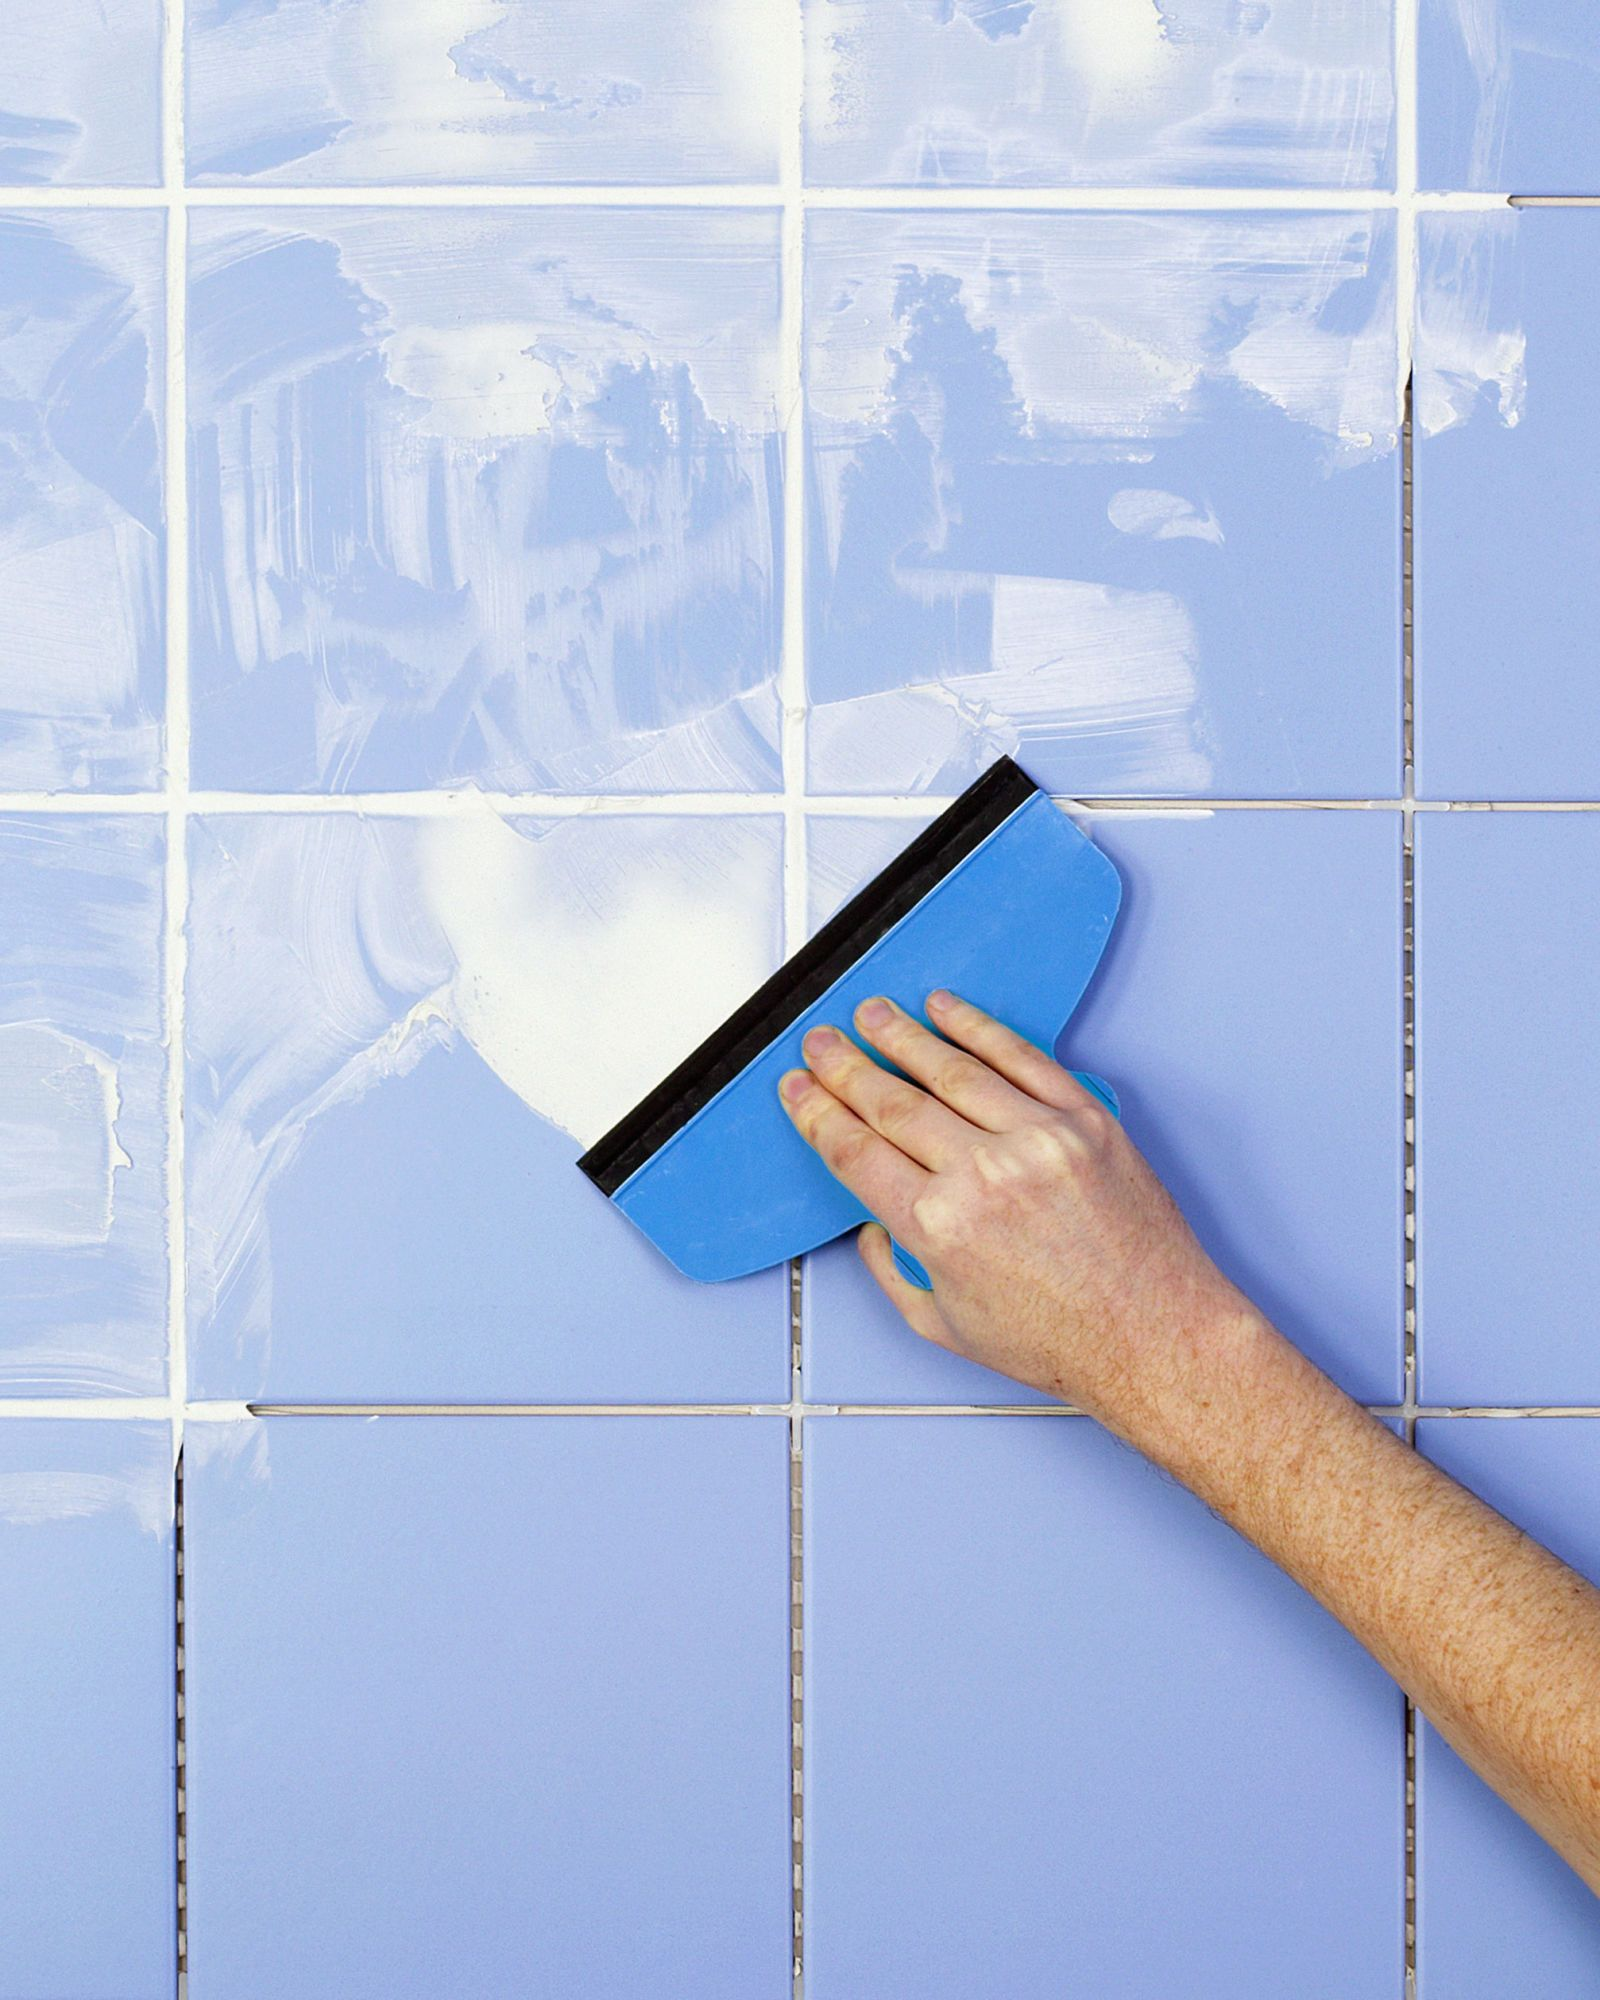 Affordable Get A Commercial Grout Haze Remover Grout Or Caulk Removerfrom Home How To Fix M Dab A Drop Grout Haze Remover Insmall Areas Reno Mistakes Everybody Makes